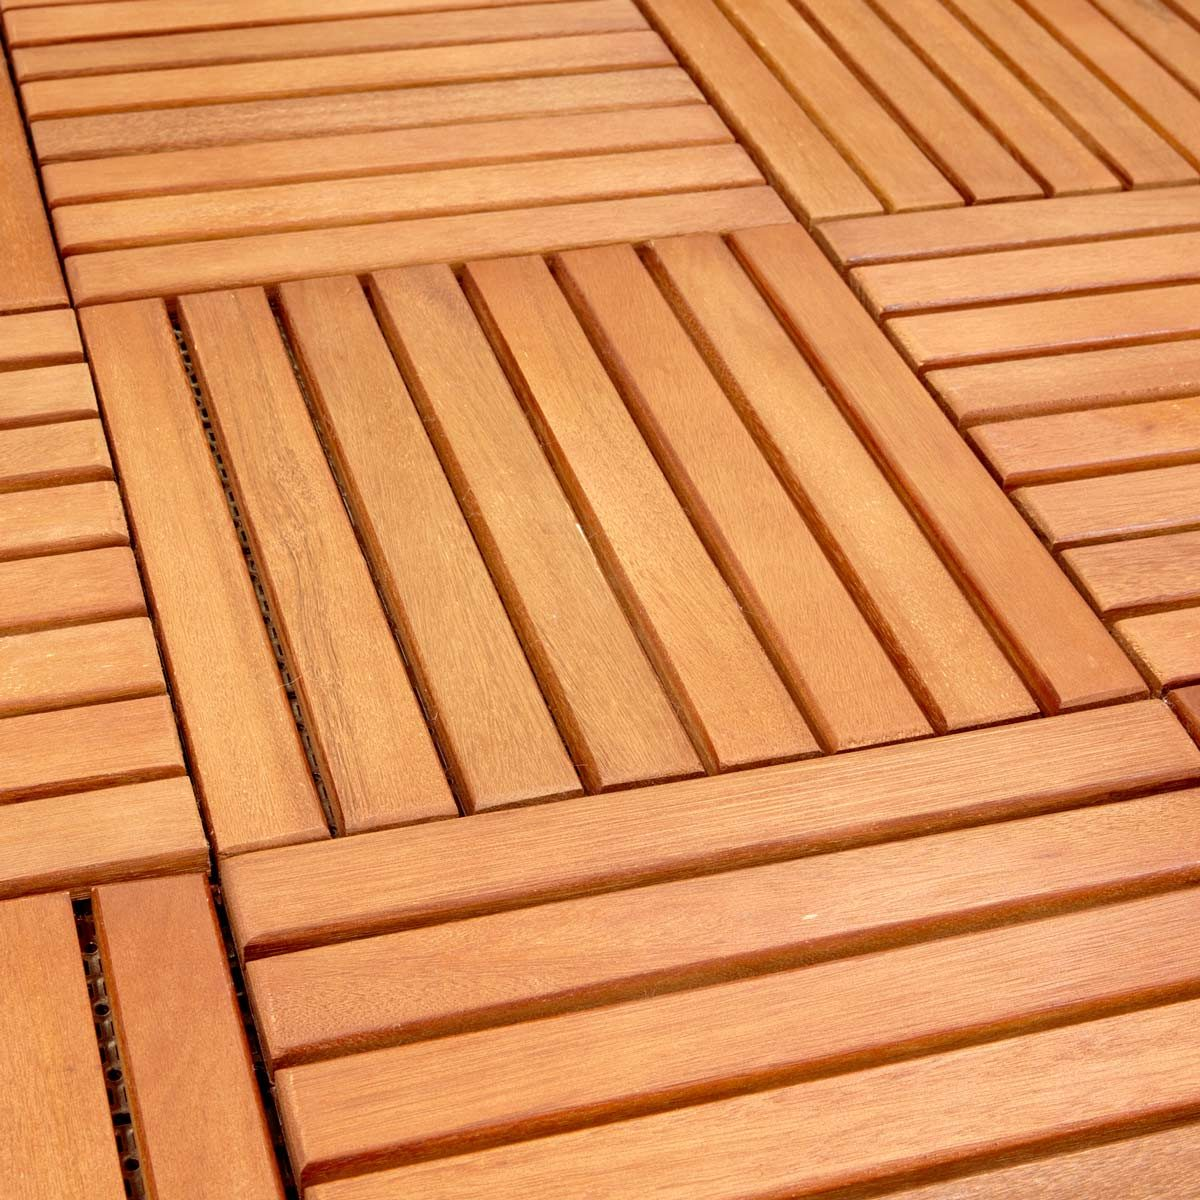 snap together wooden deck panels